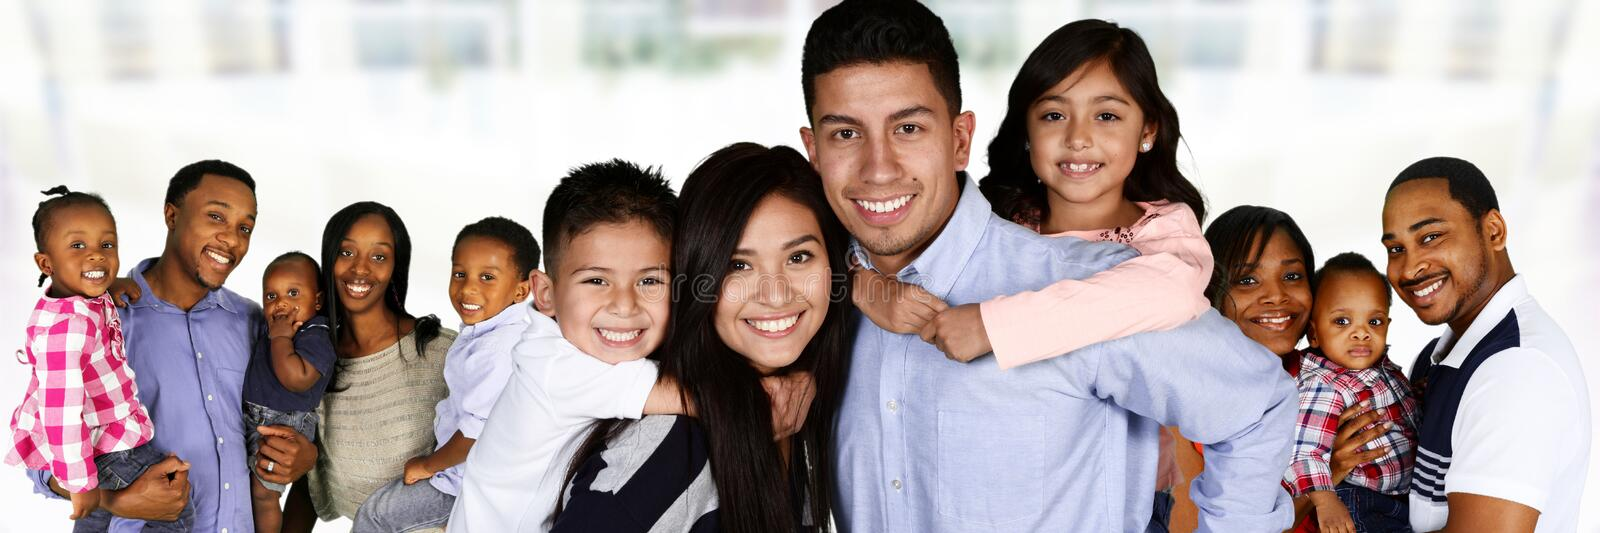 Happy Young Families. Together in a group stock image